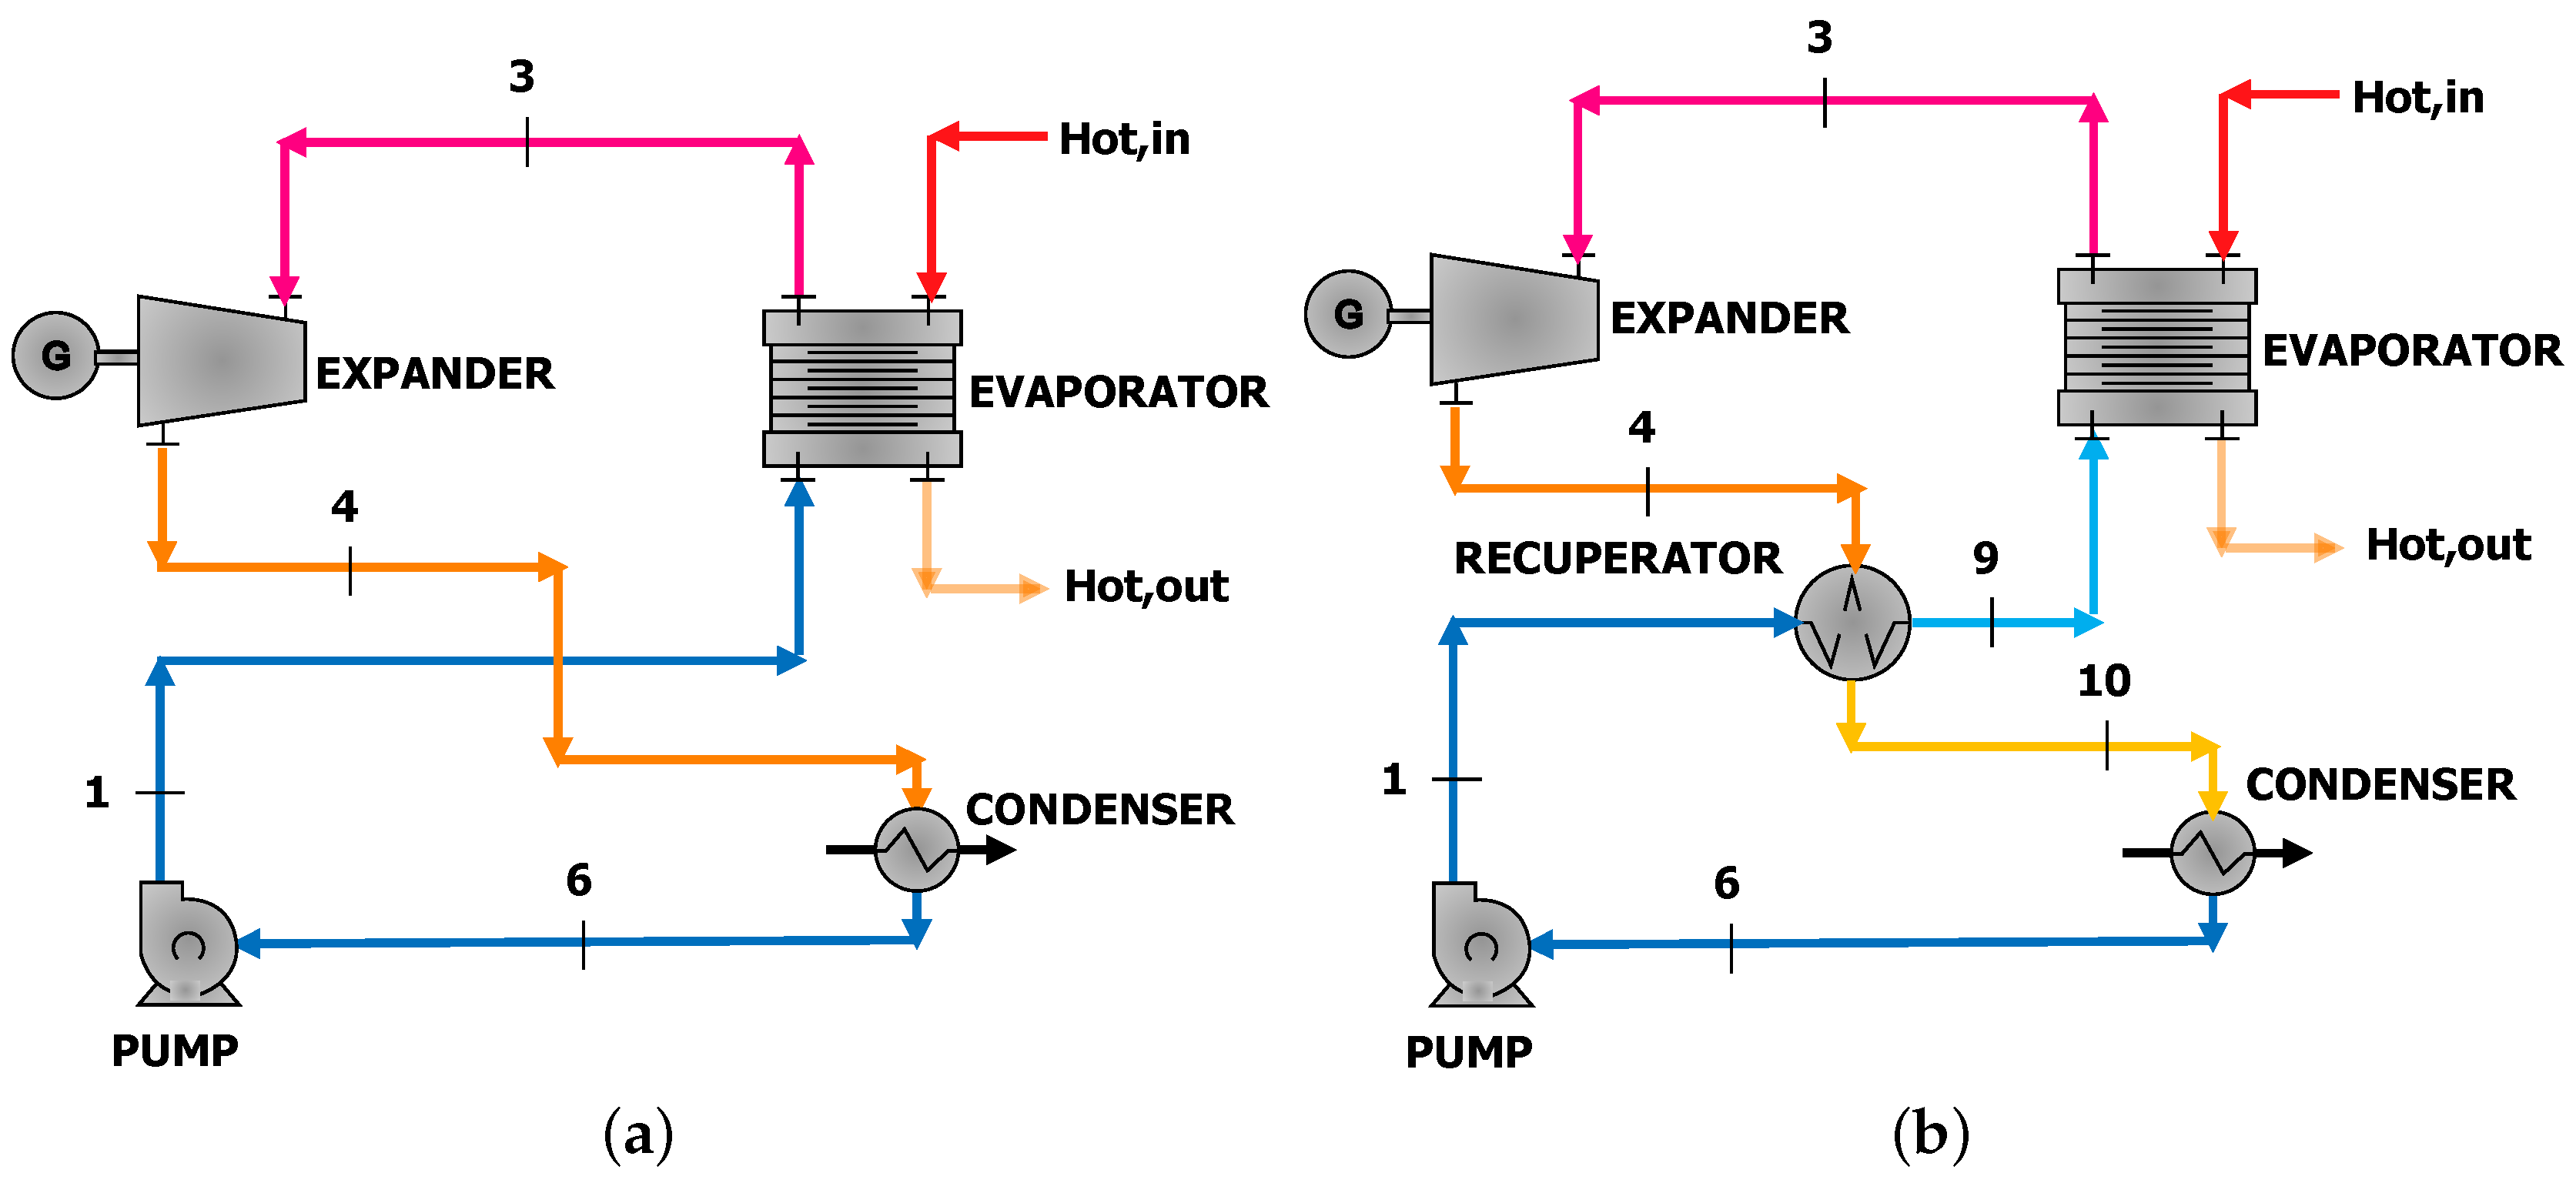 Energies Free Full Text Biogas Engine Waste Heat Recovery Using Diesel Power Plant Layout And Working 10 00327 G002